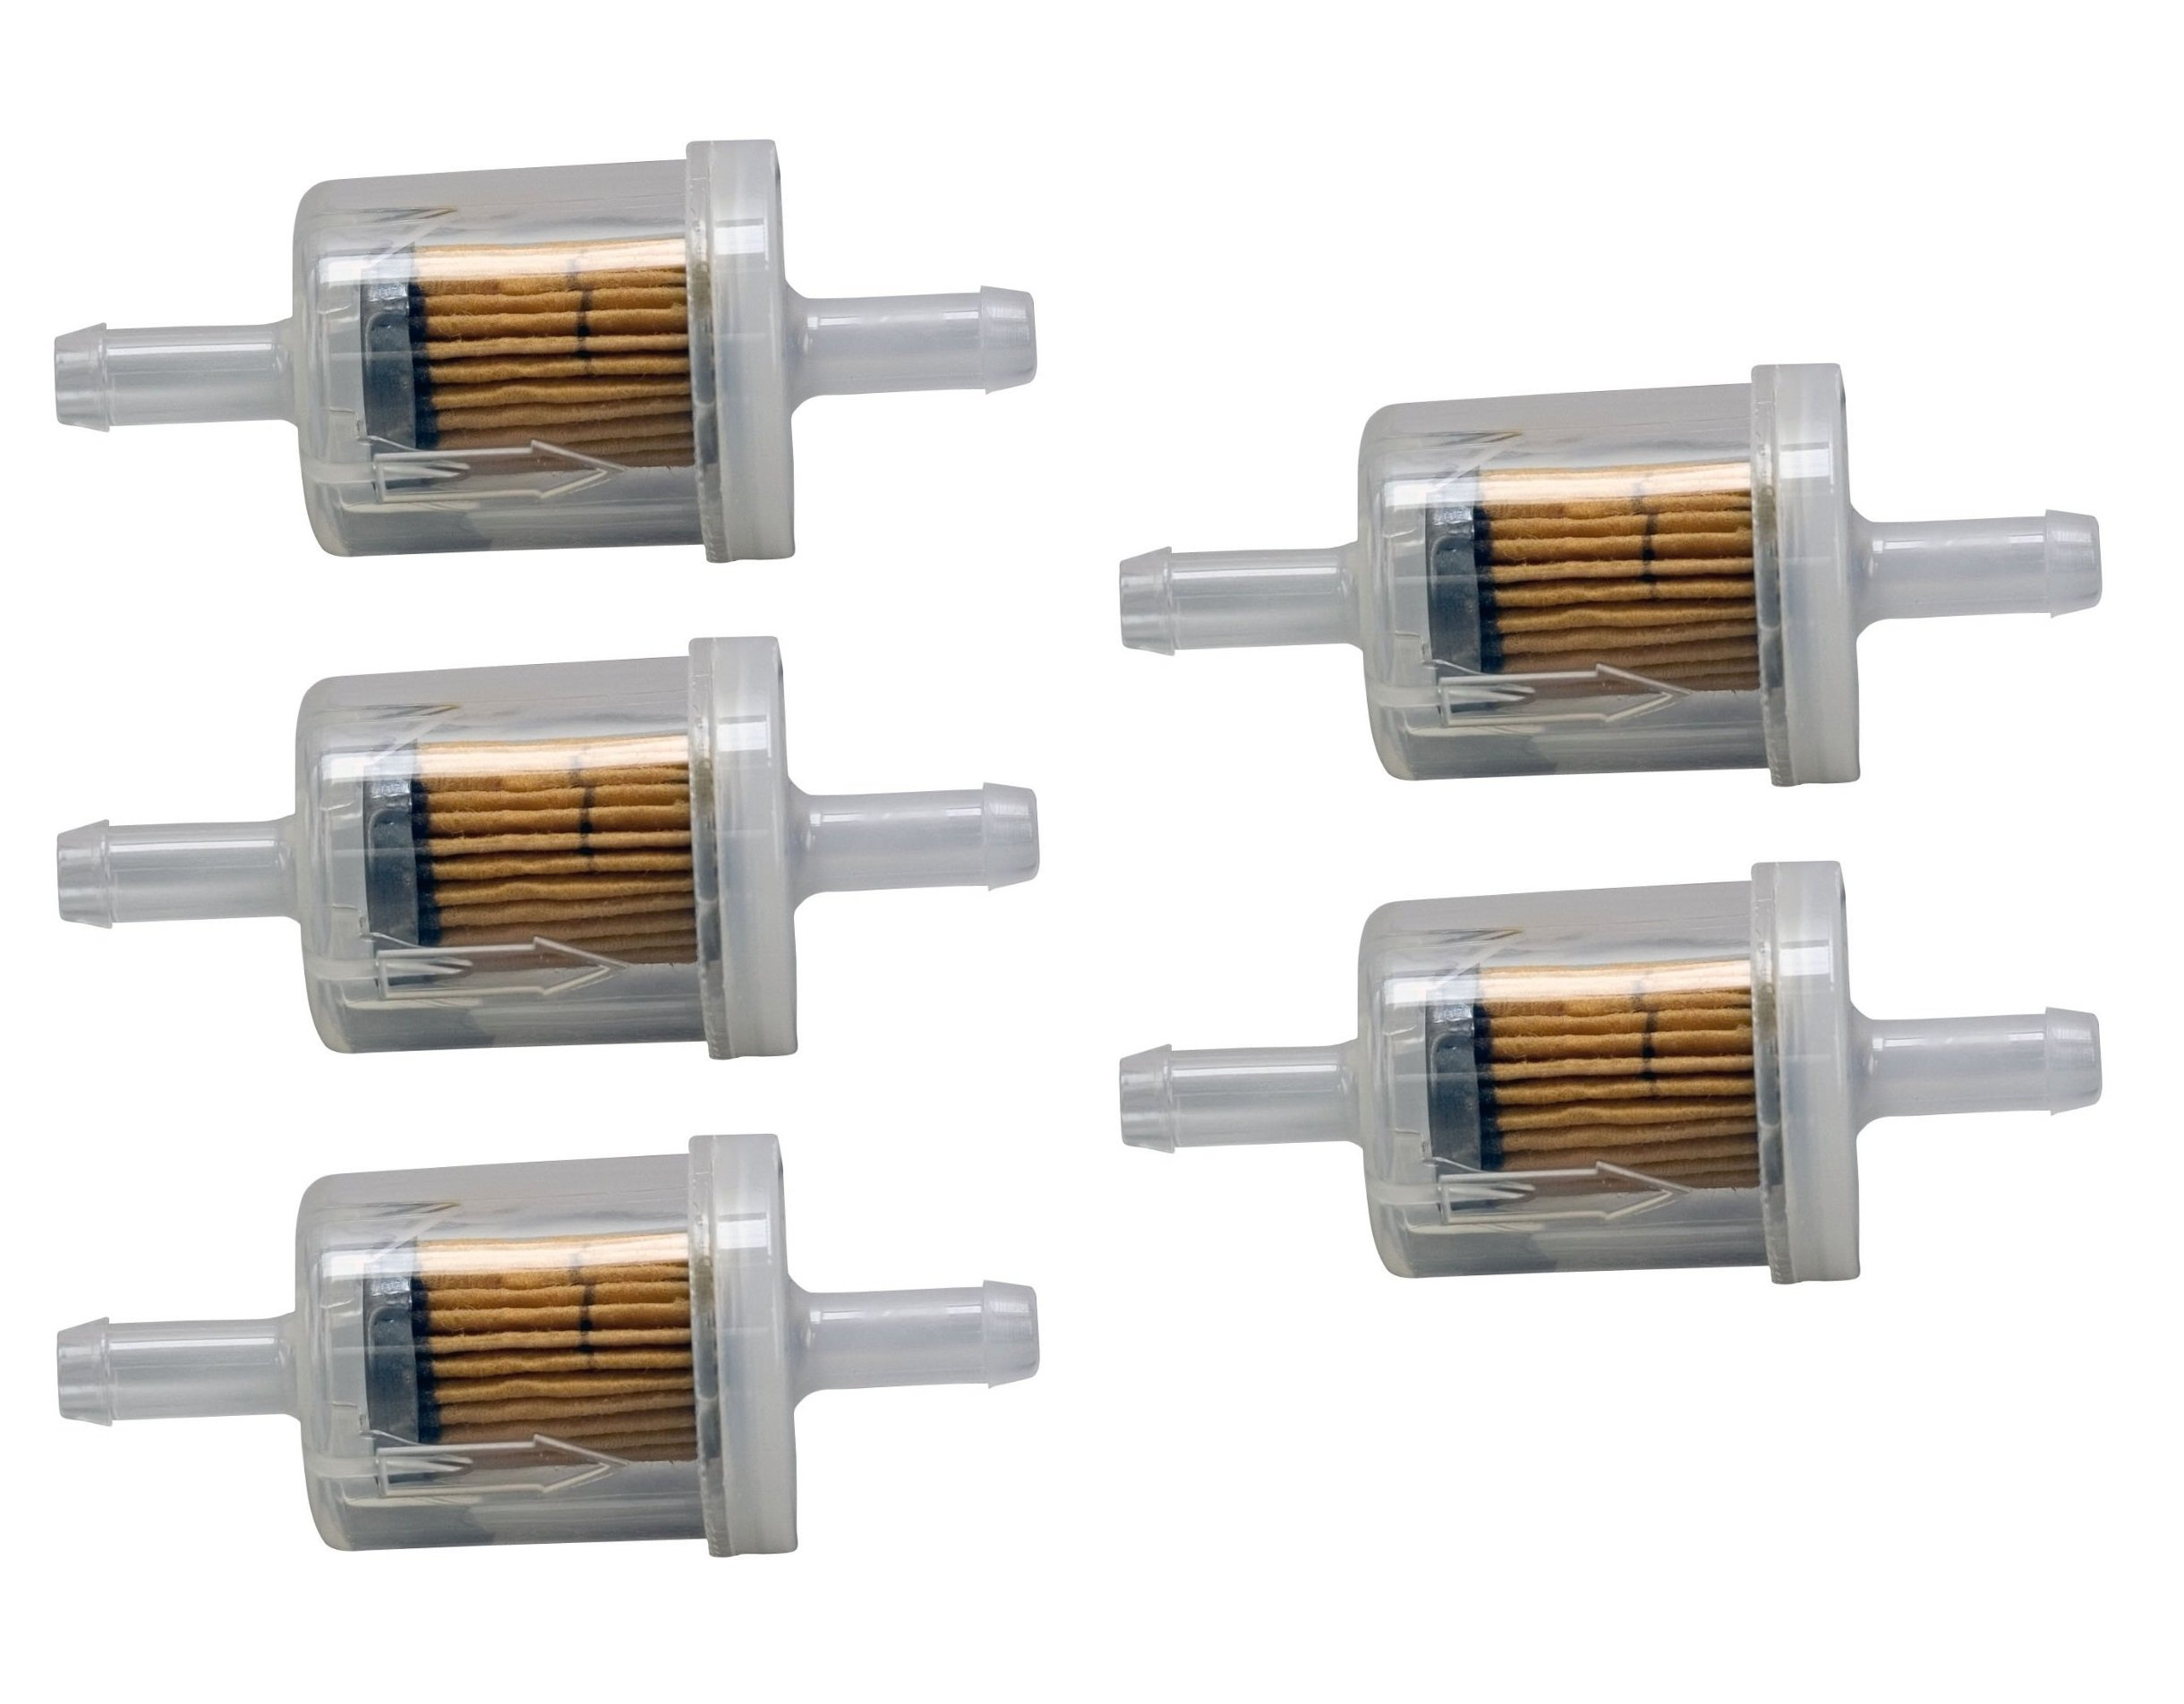 Briggs & Stratton Genuine OEM 691035 40 Micron Fuel Filter (5 Pack)